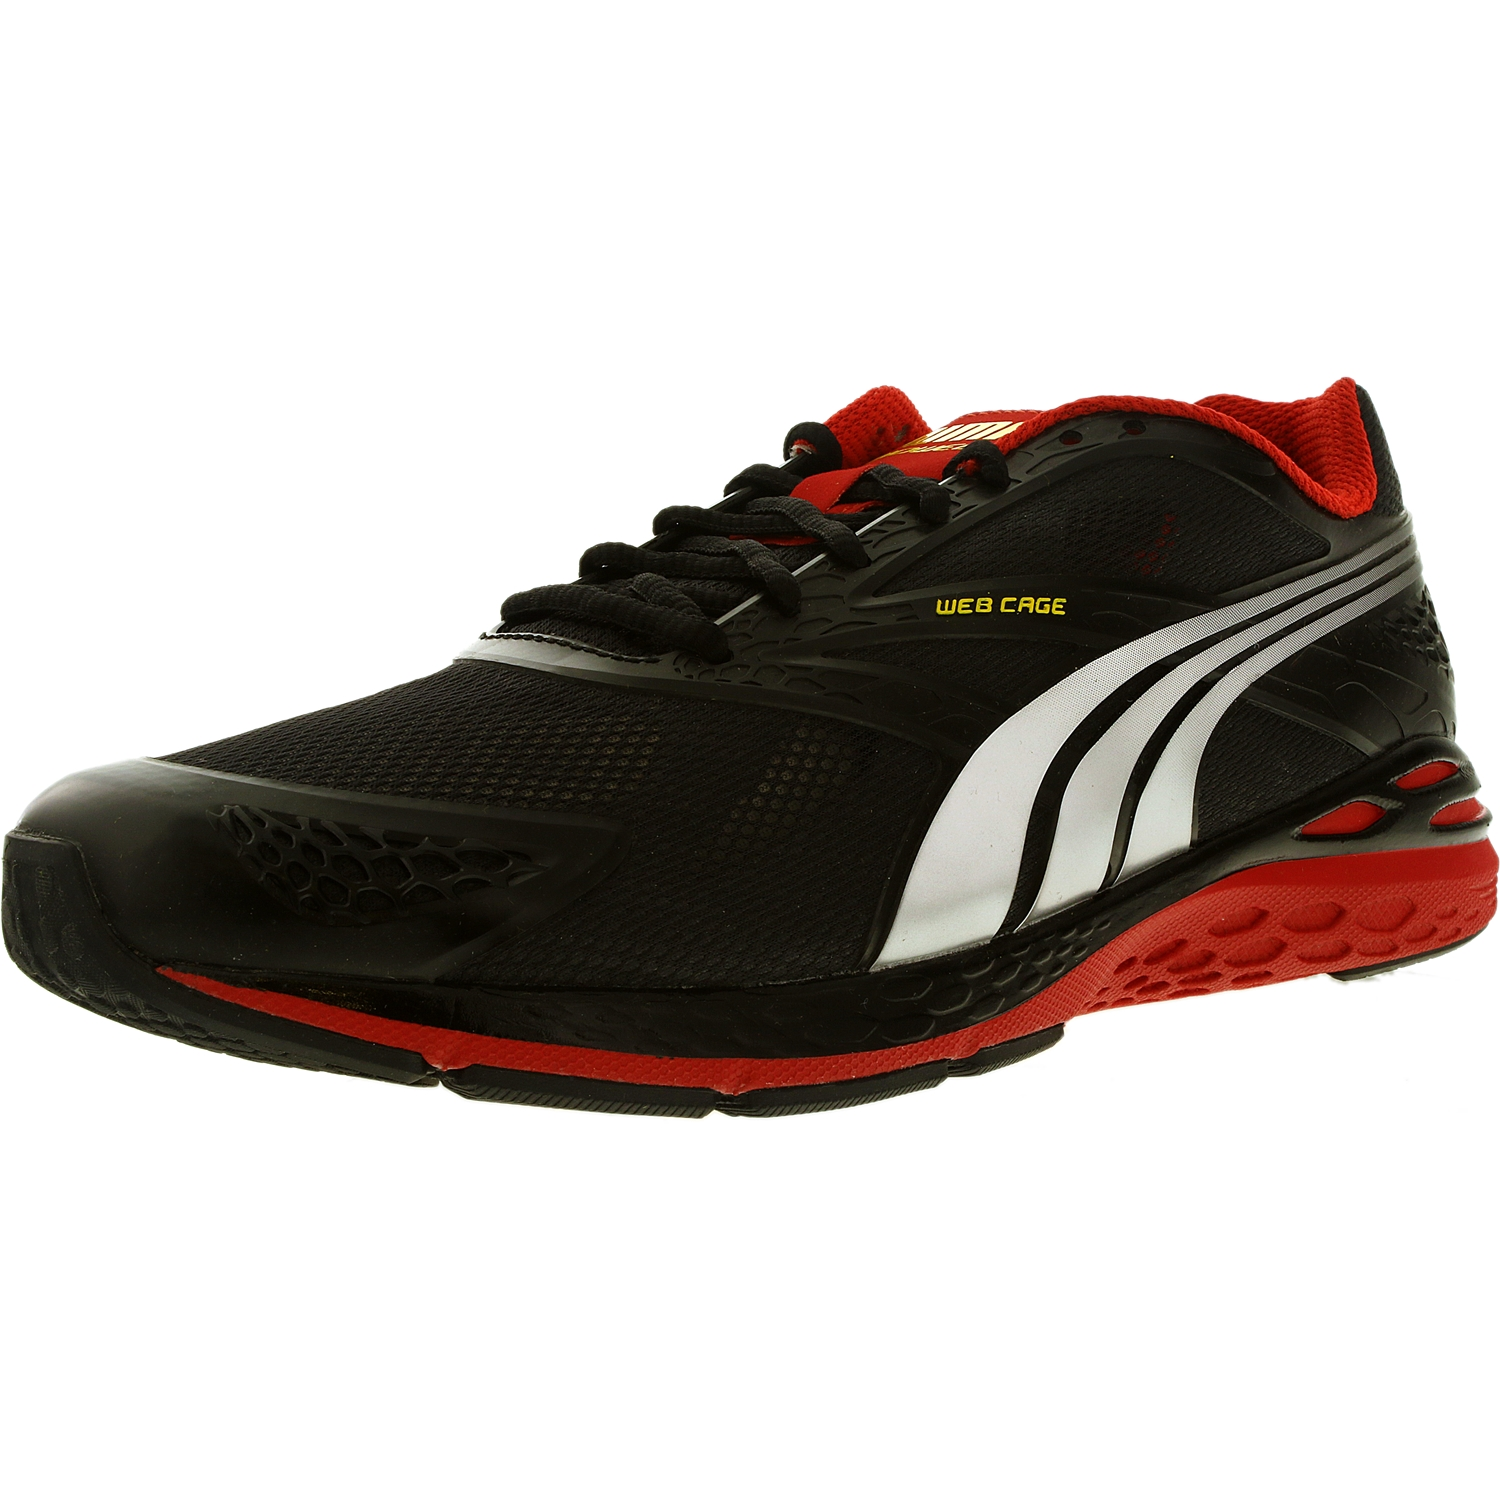 Puma Men's Bioweb Speed Ankle-High Walking Shoe by Puma